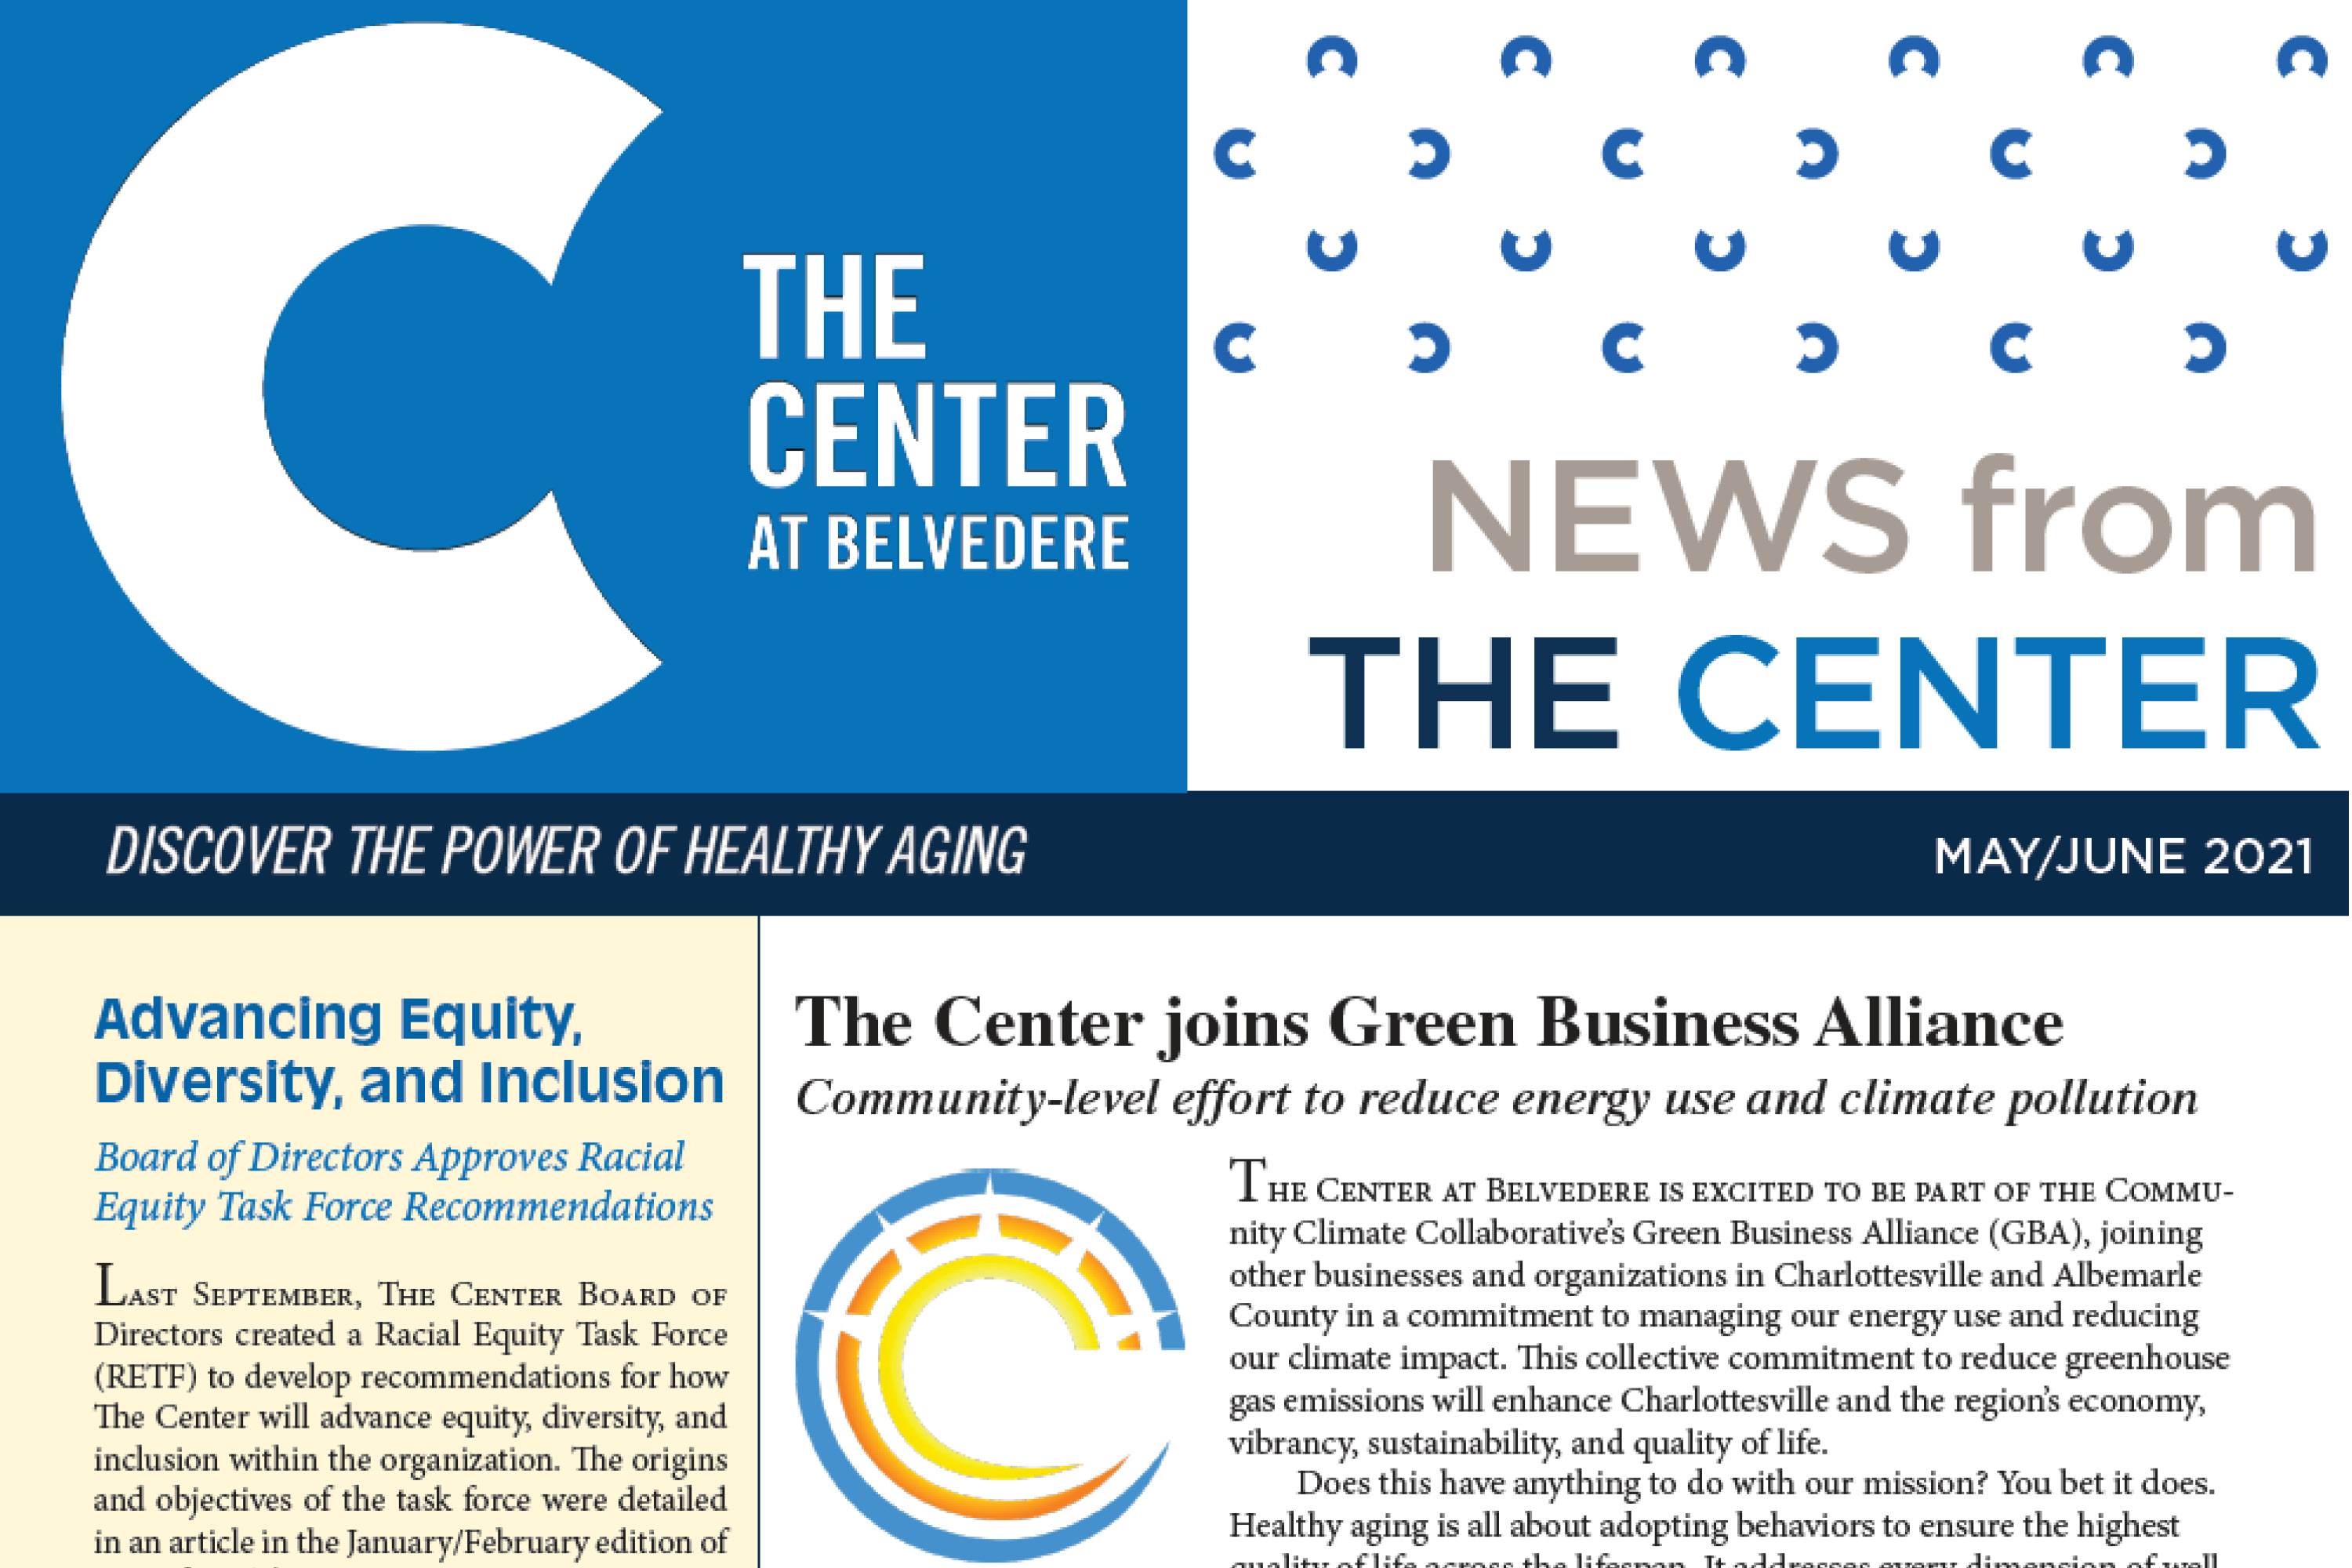 News from The Center